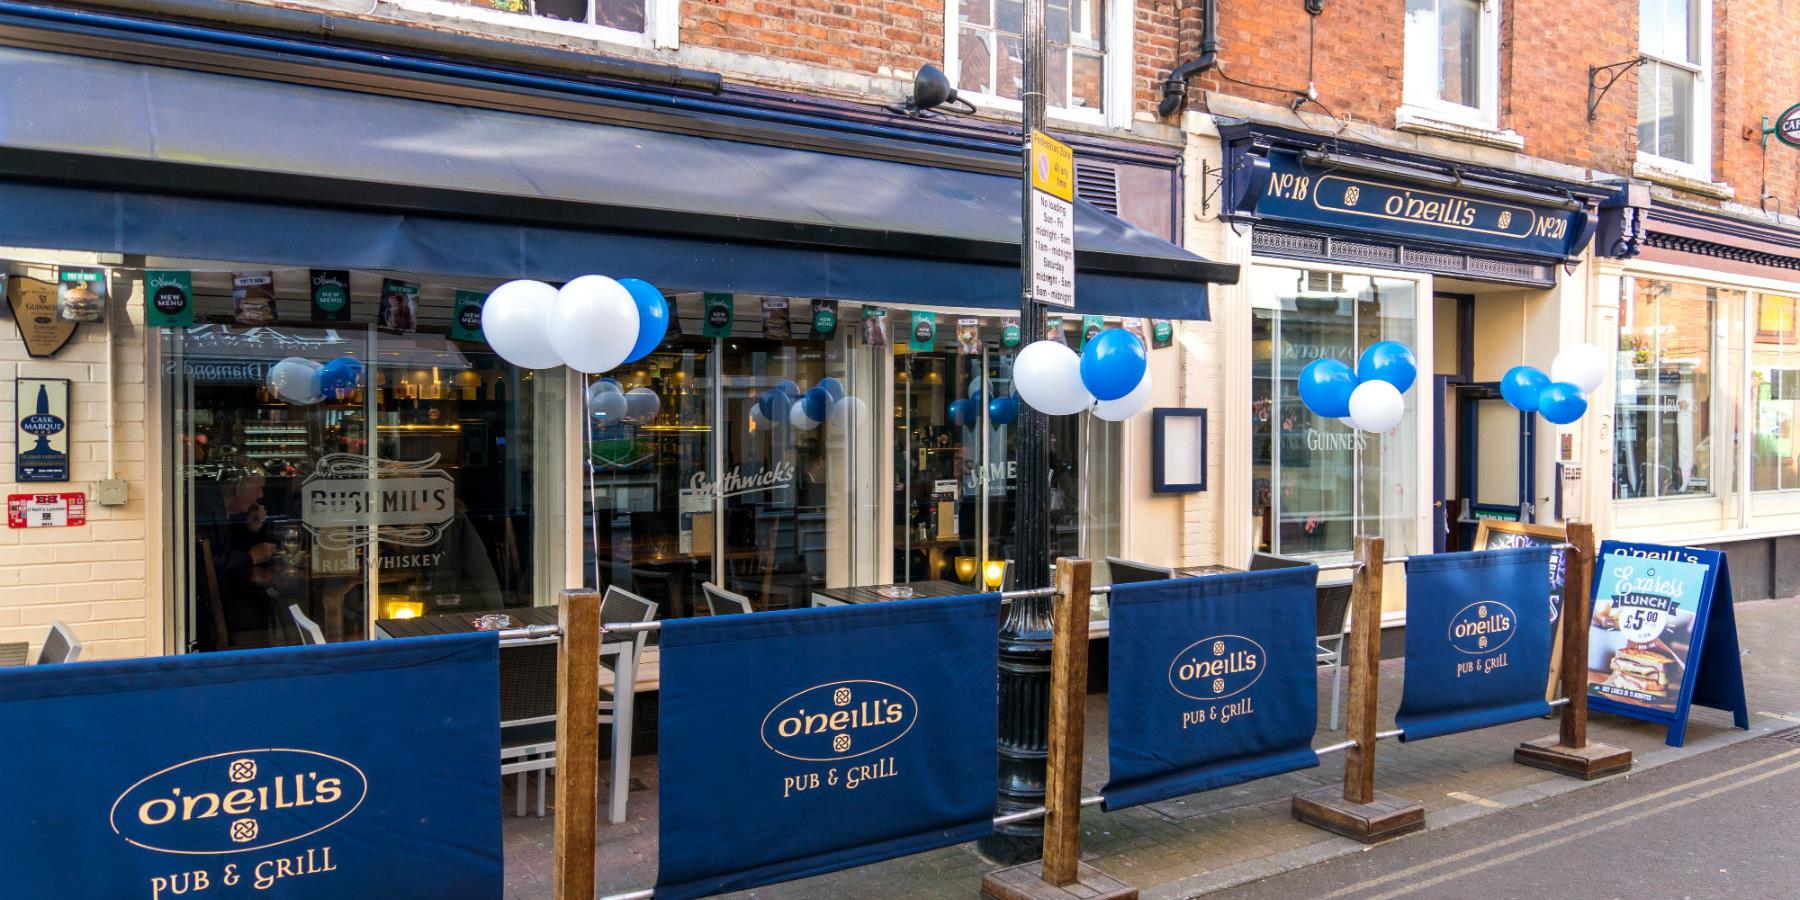 O'Neill's, Pub - Eating and Drinking in Leicester